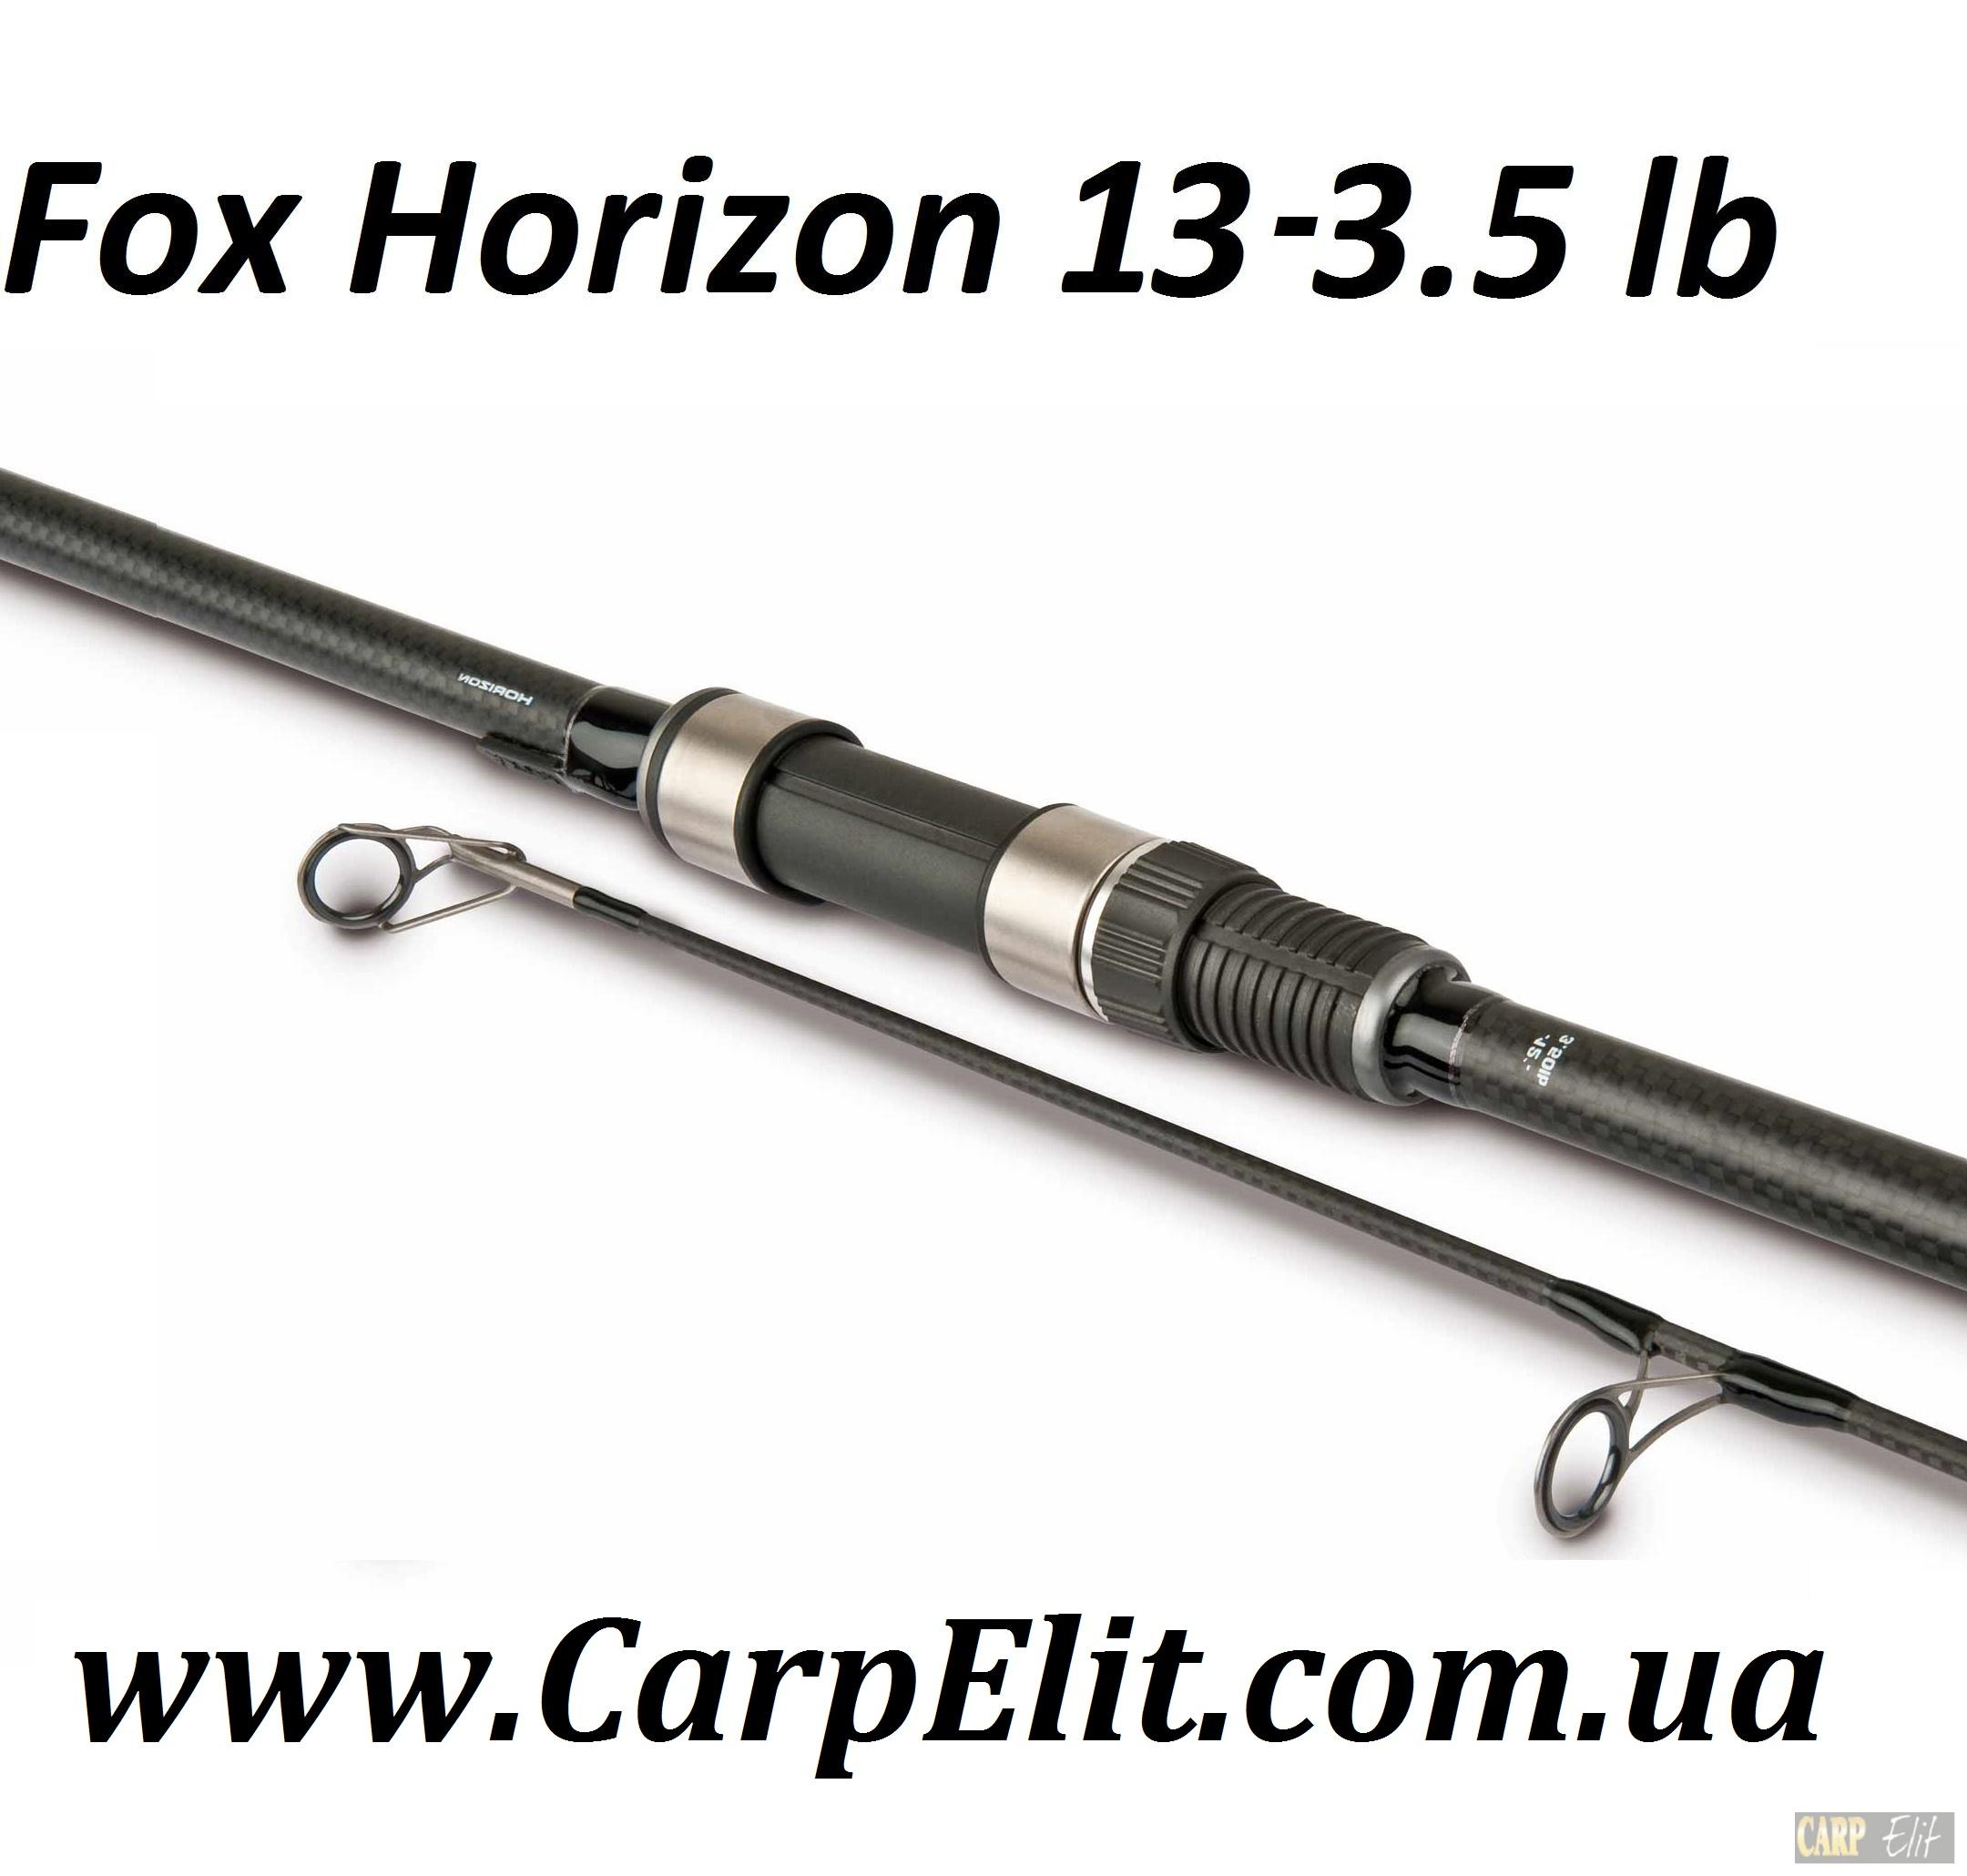 Fox Horizon 13ft 3.5 lb